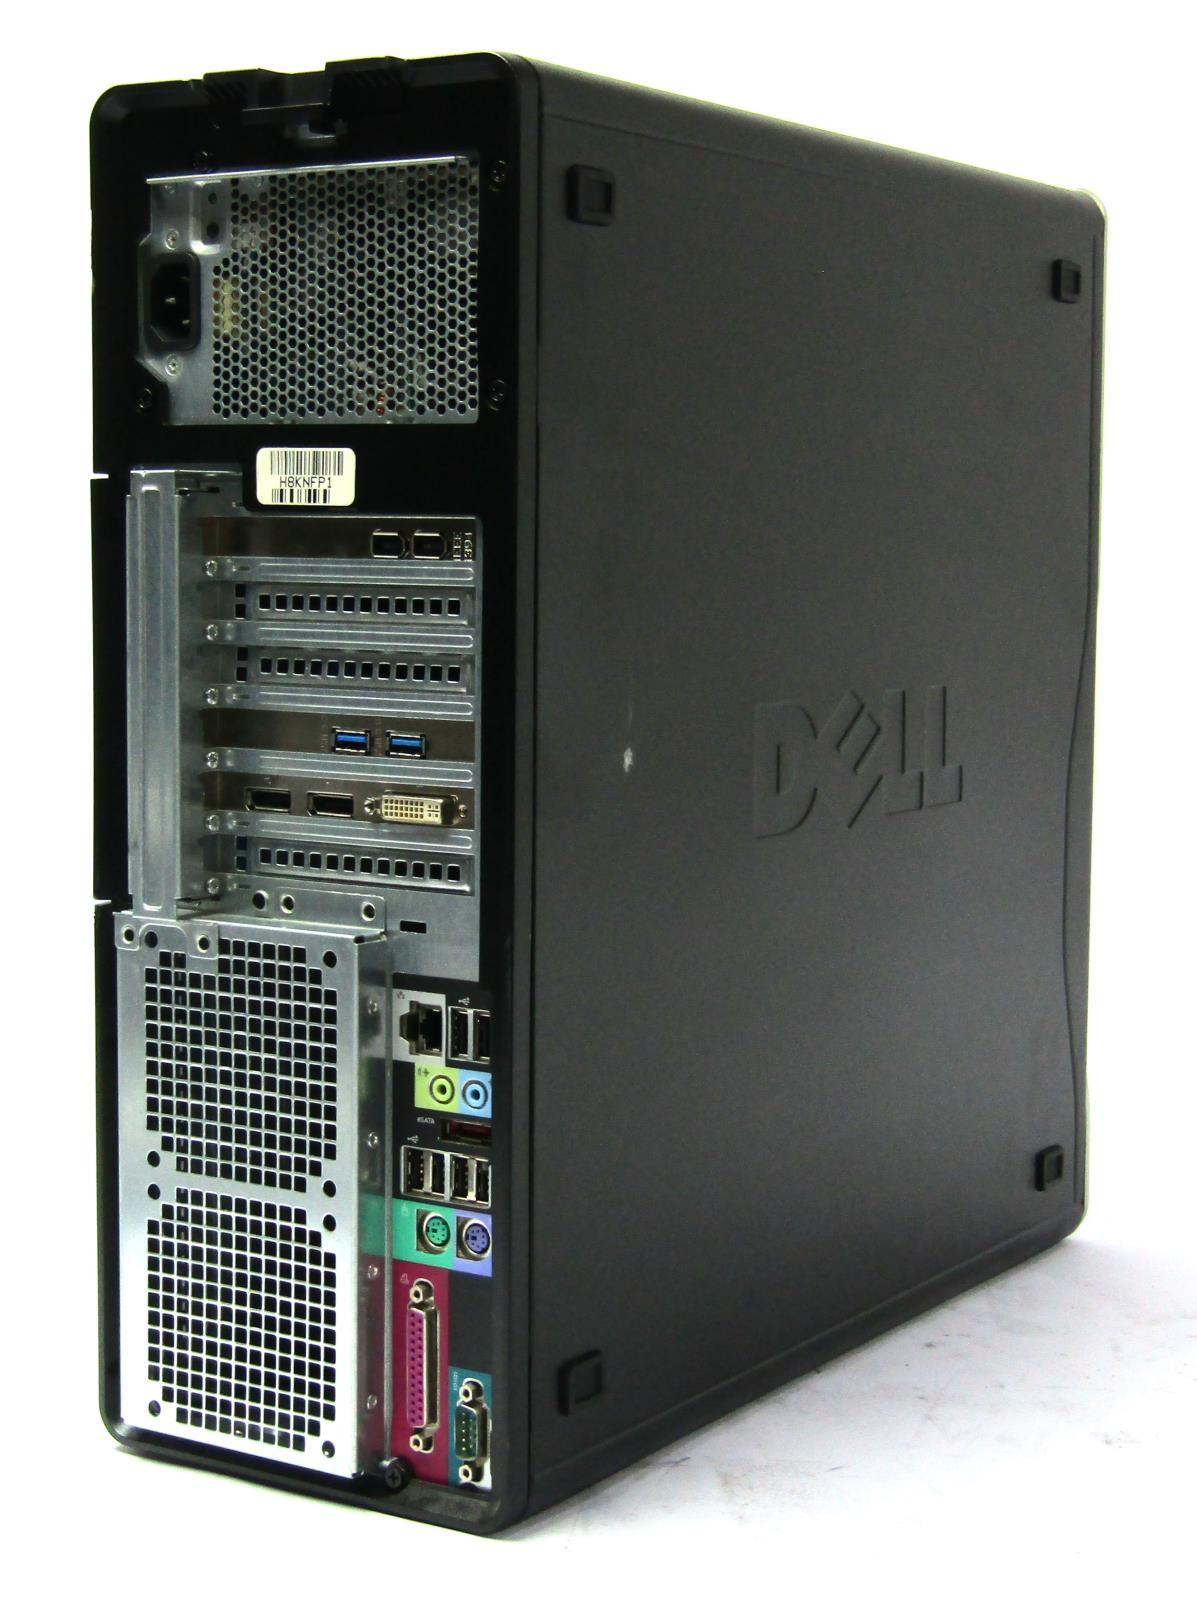 Details about Dell Precision T3500 Workstation | 2 80GHz Quad Core Xeon  W3530 | 12gb | DVD-RW